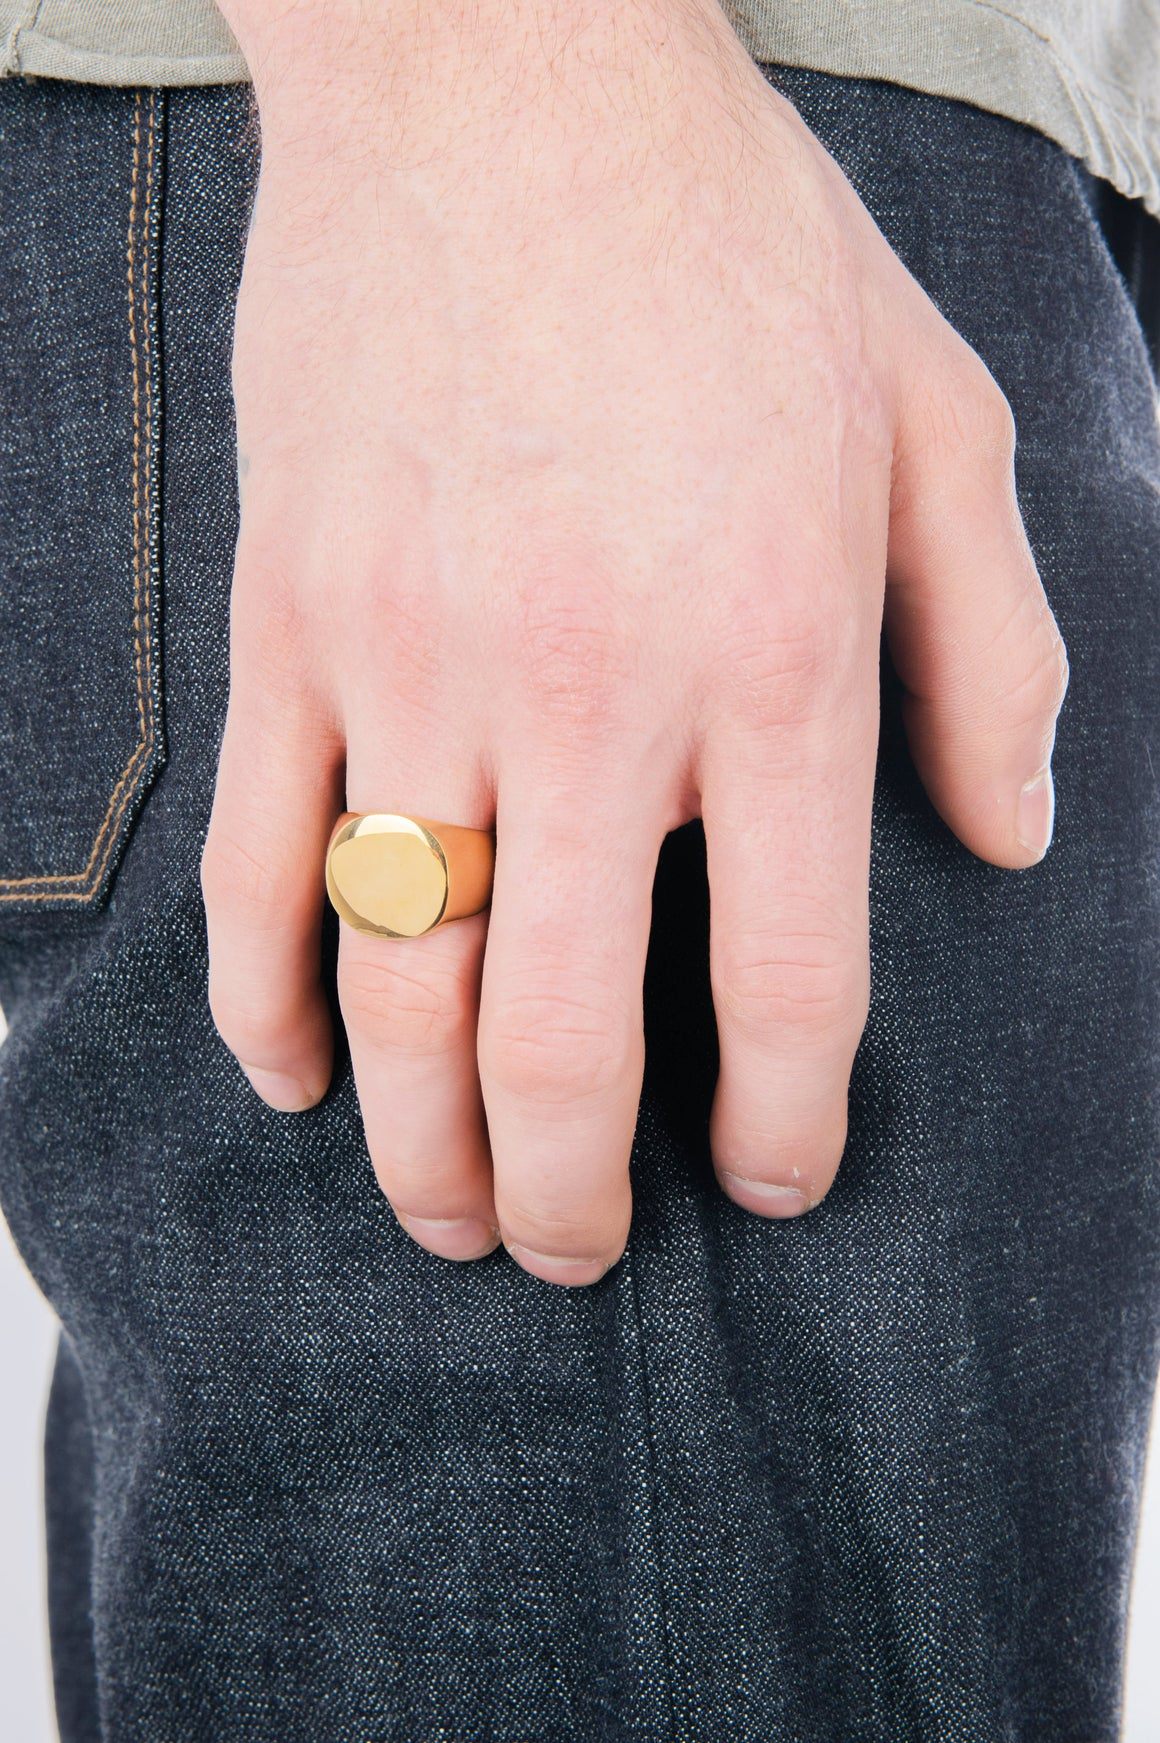 Mirrored Signet Ring in Gold - Philistine